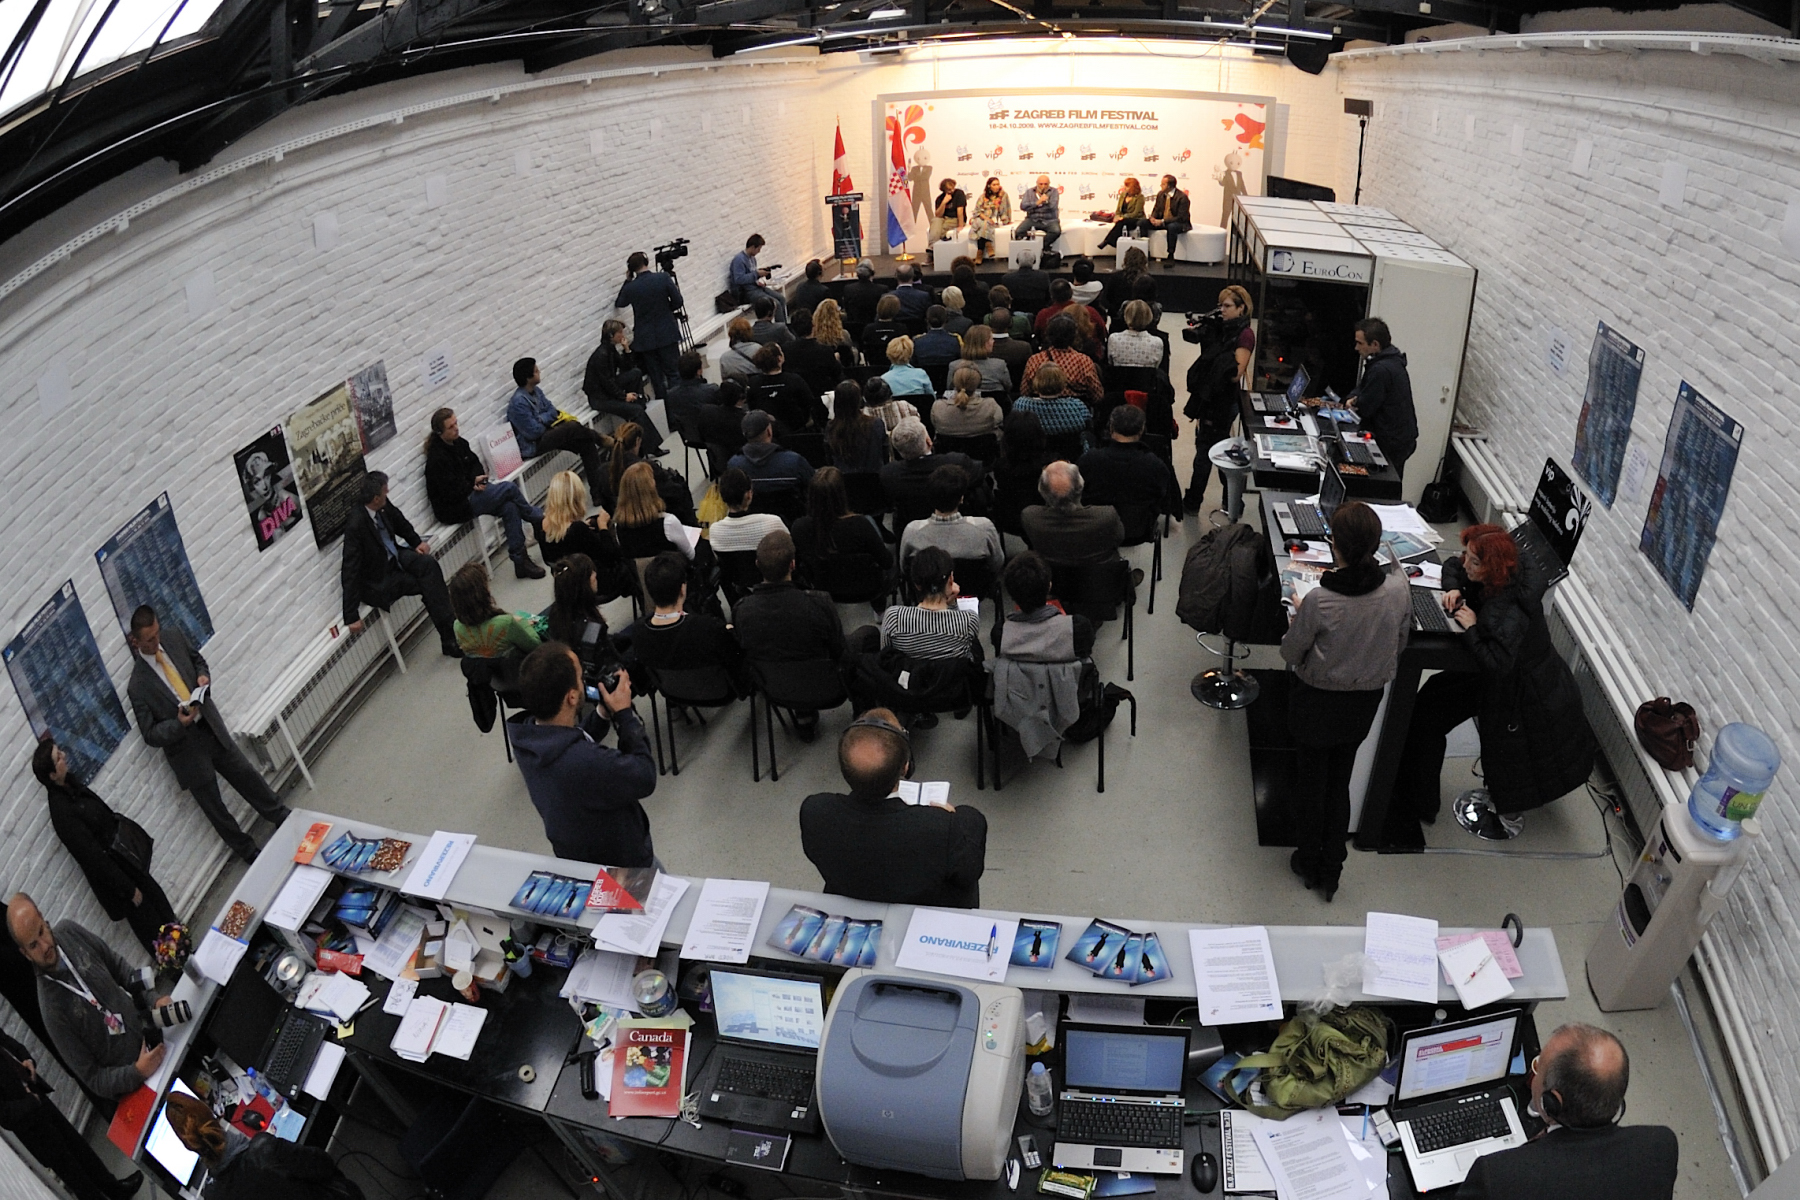 The Public Art Matters Forum was held at Gallery Building at the Zagreb Film Festival in Croatia.